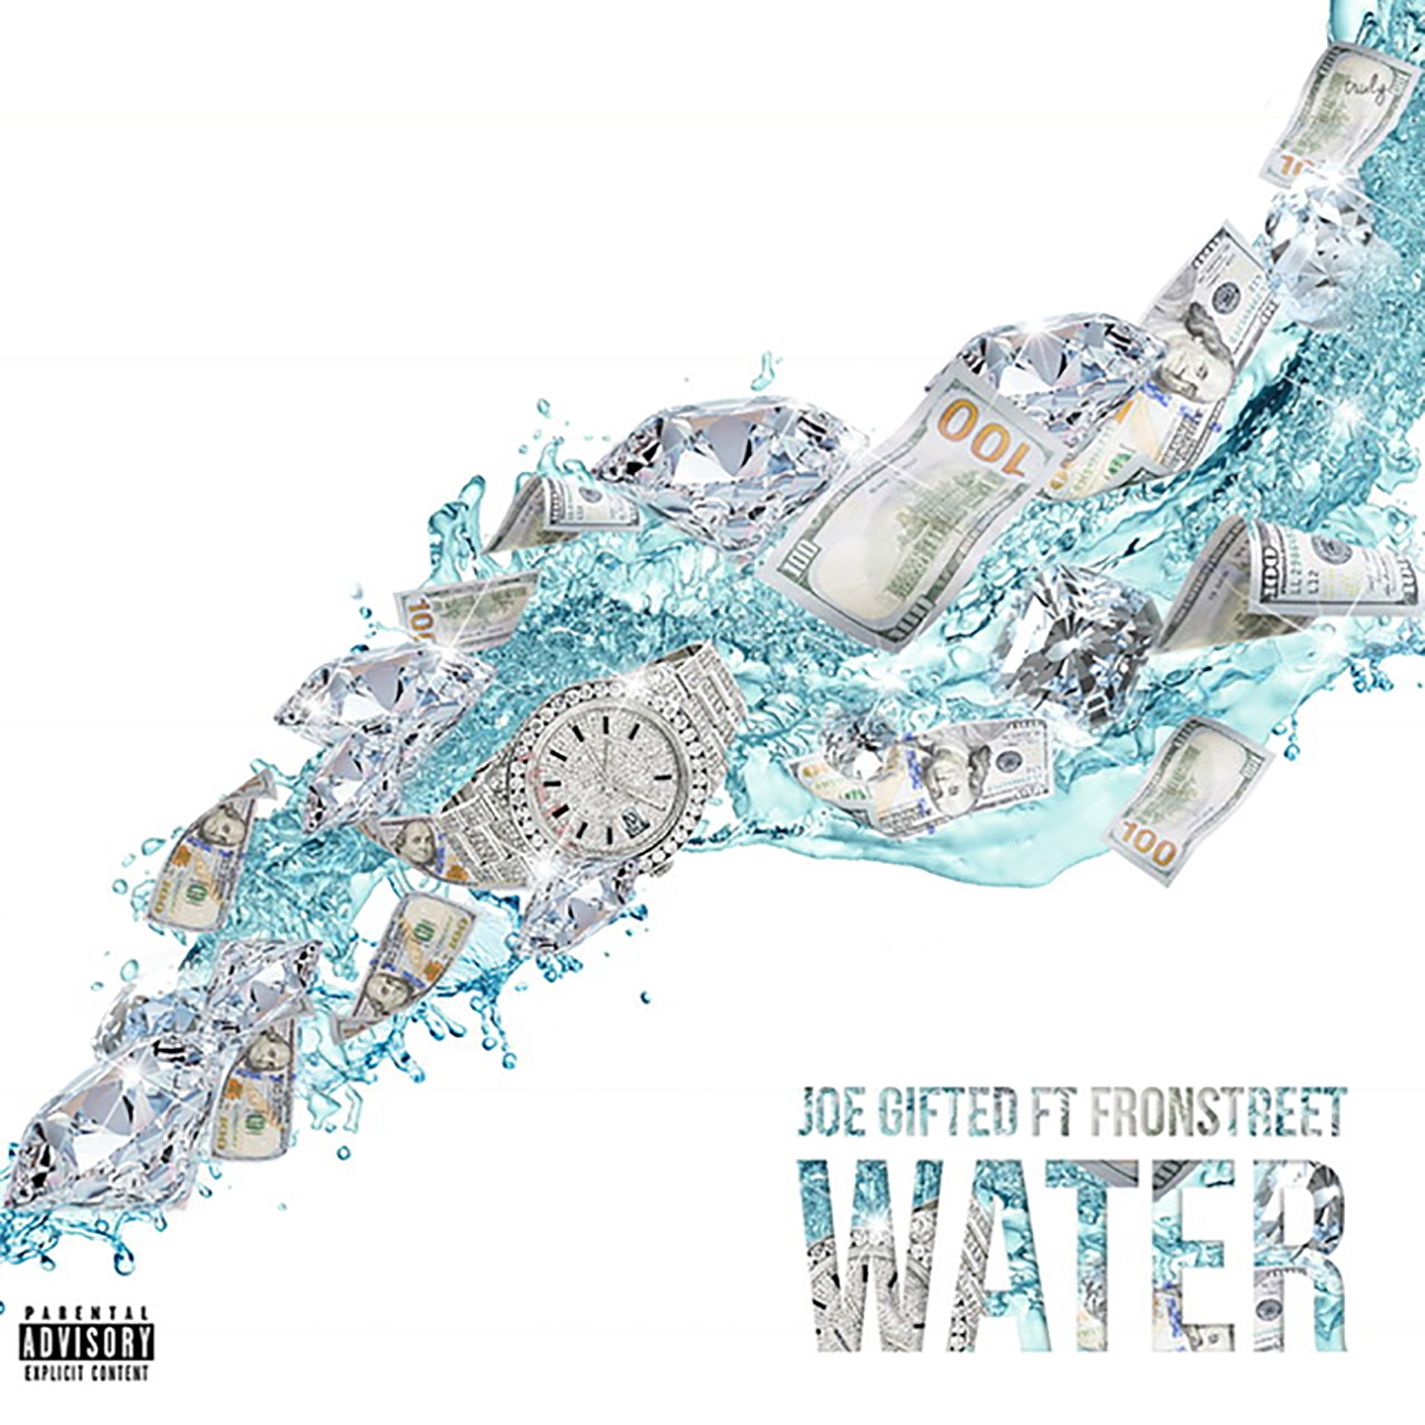 Water (feat. Fronstreet)